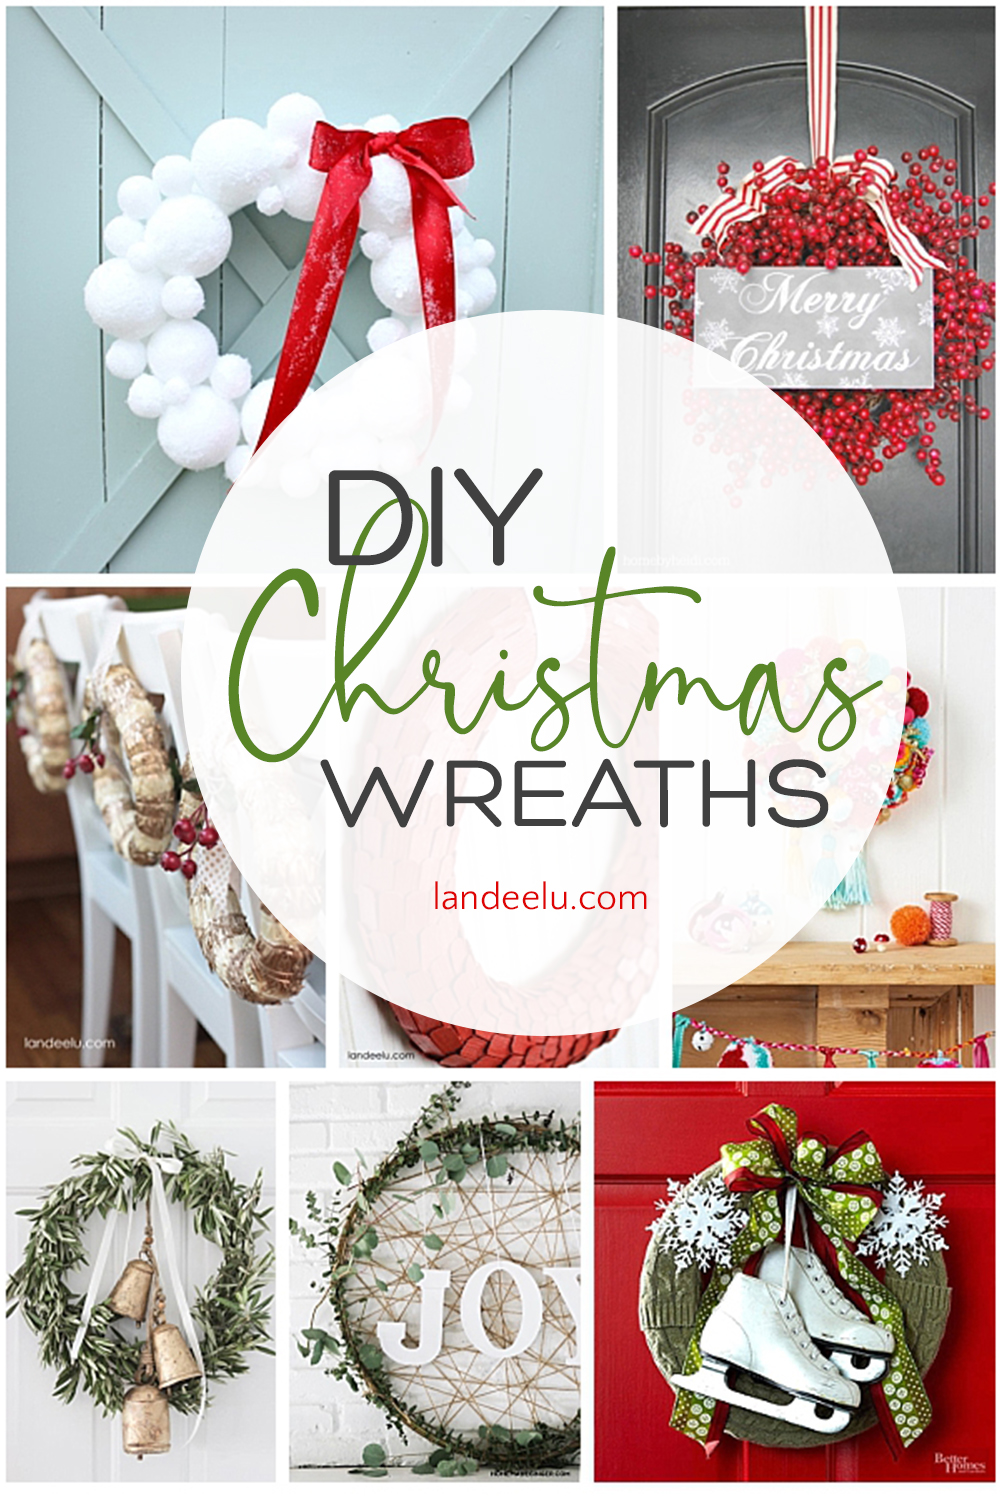 I love Christmas crafts! These DIY Christmas wreaths are awesome... I want to make some! #christmaswreaths #christmascrafts #wreaths #diywreaths #christmasdecor